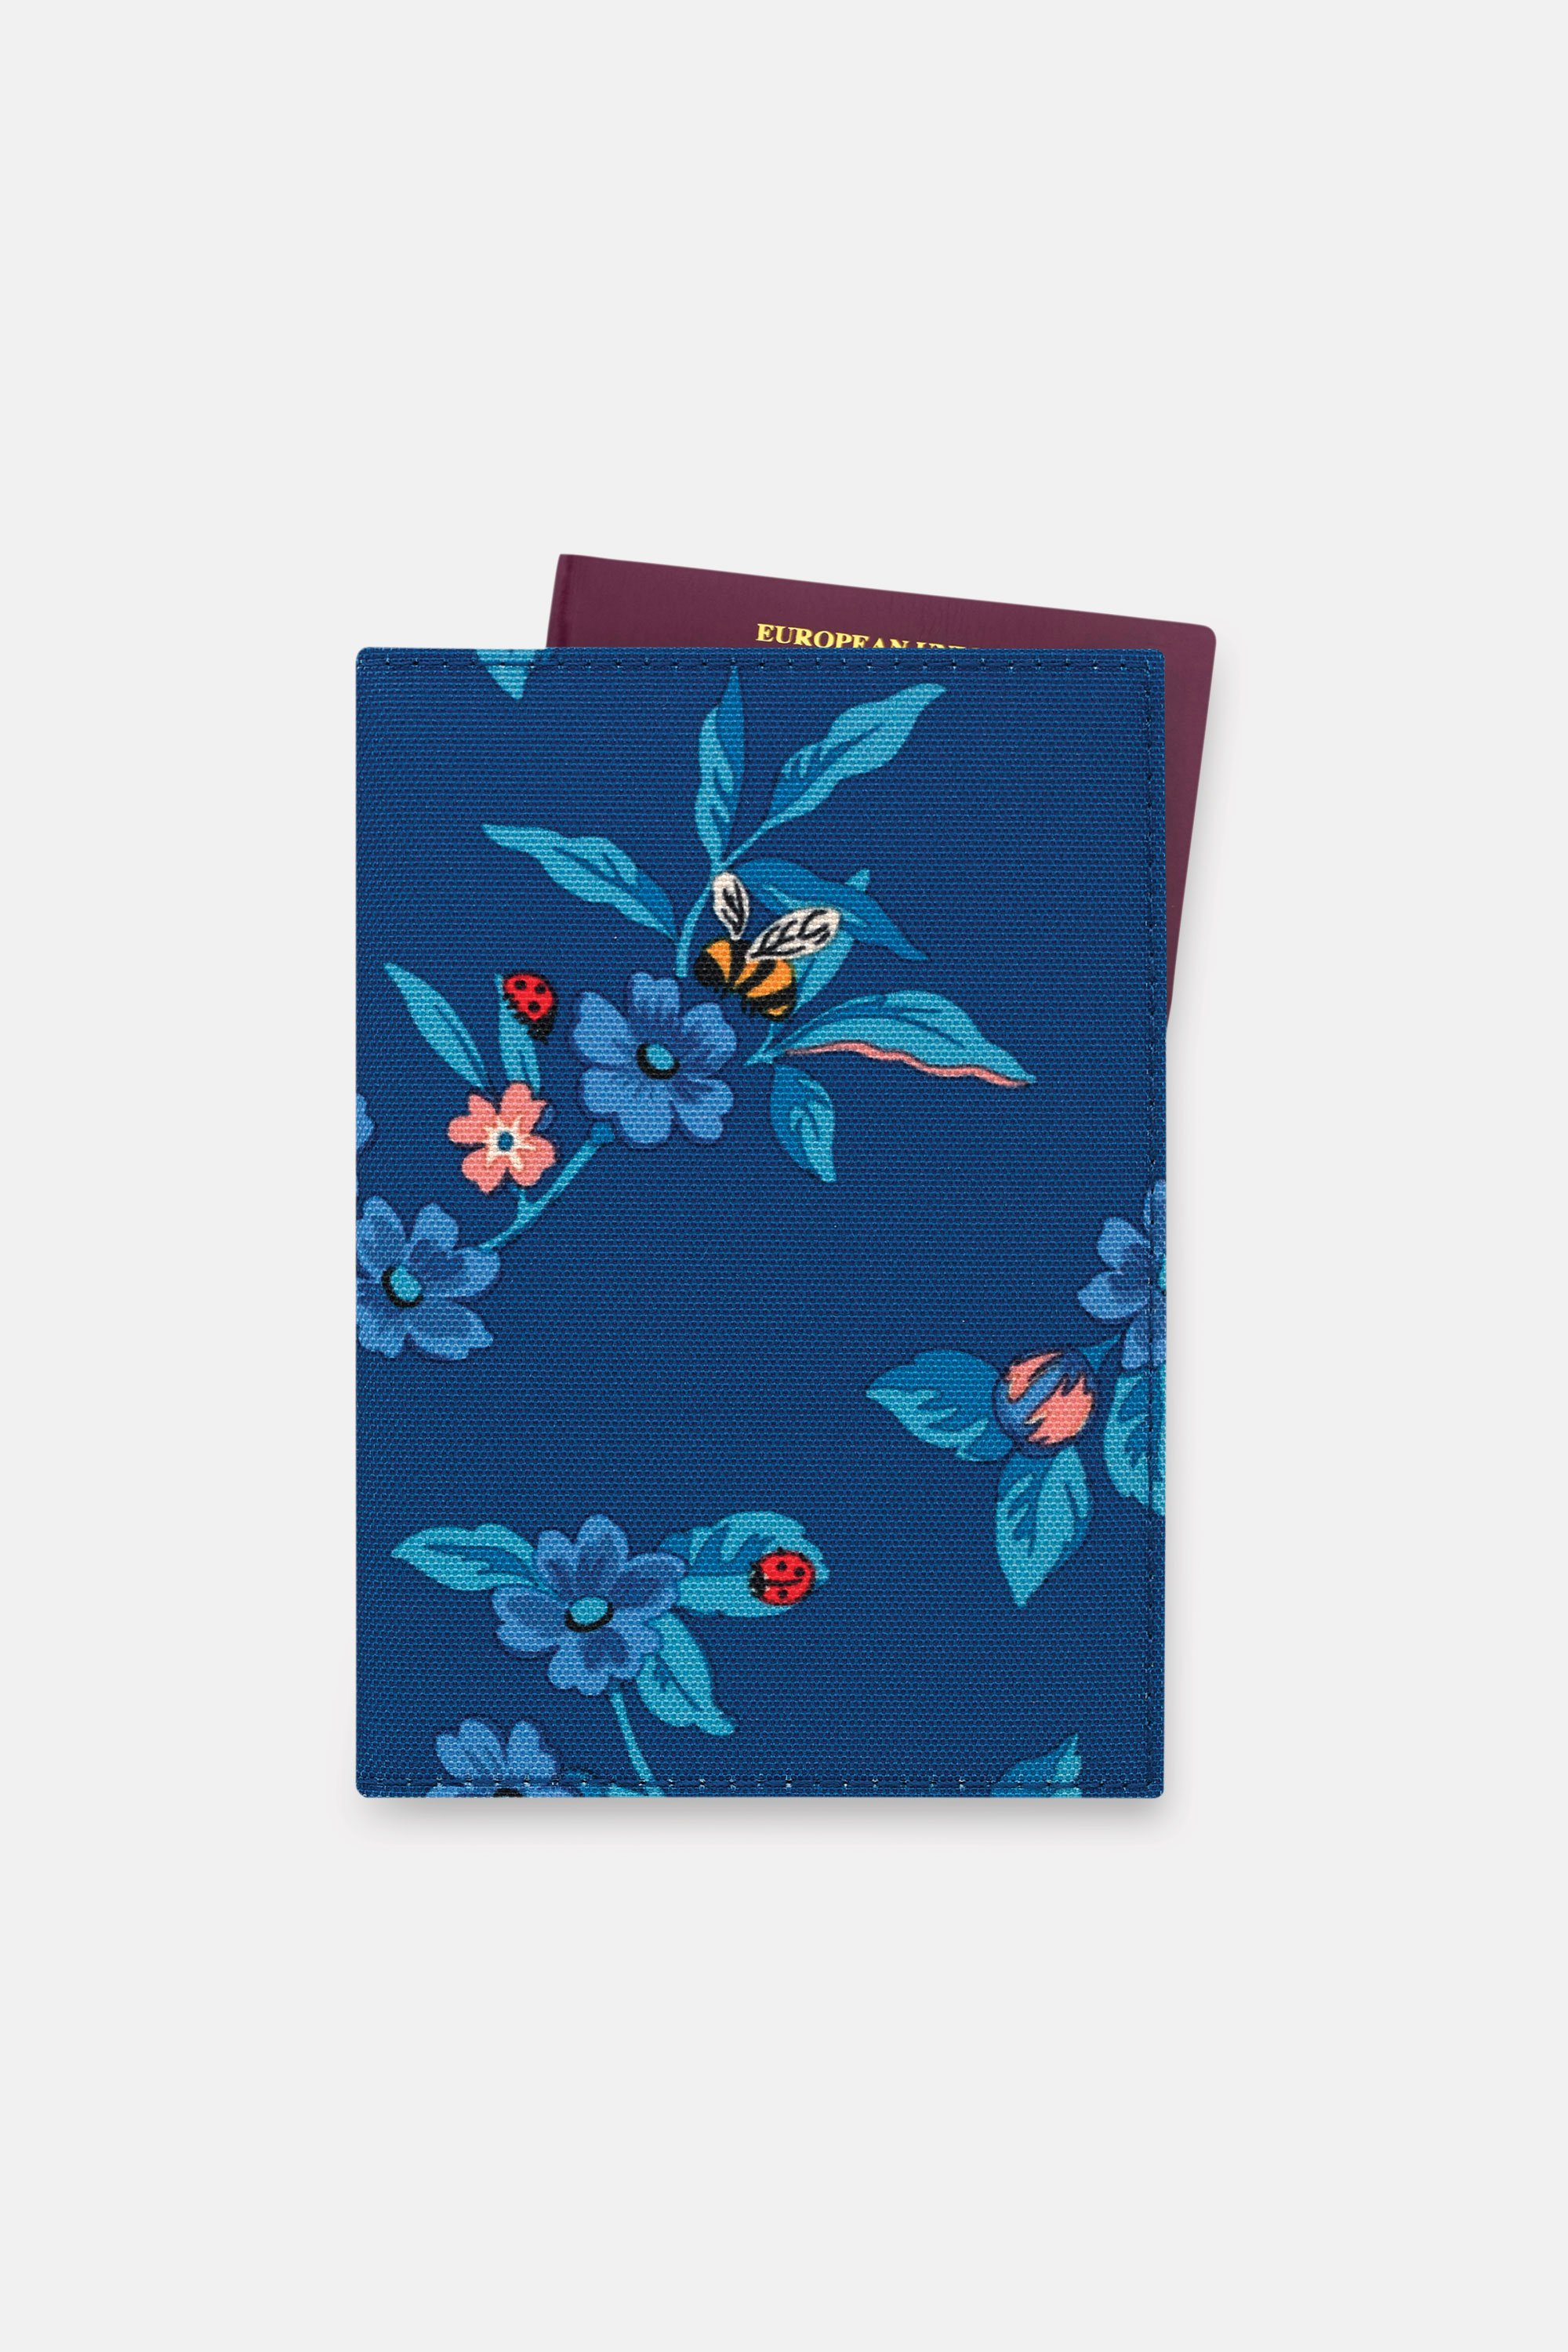 Cath Kidston Greenwich Flowers Recycled Passport Holder in